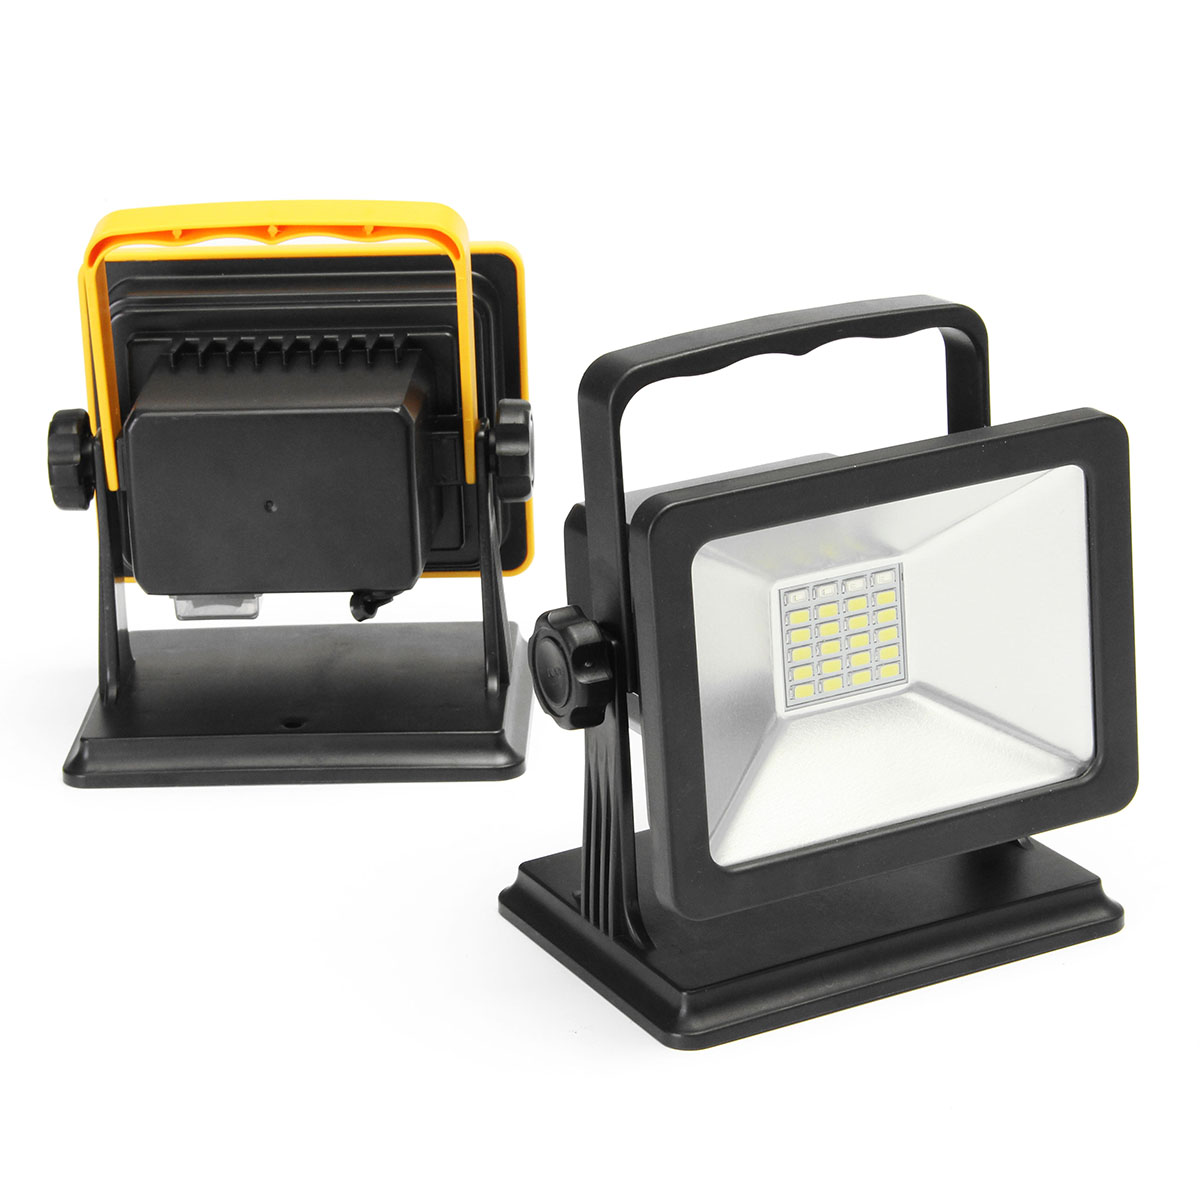 NEW Safurance Portable Emergency Flood Light Warning Light Outdoor Rechargeable Roadway Safety Traffic Light new safurance welders dual leather